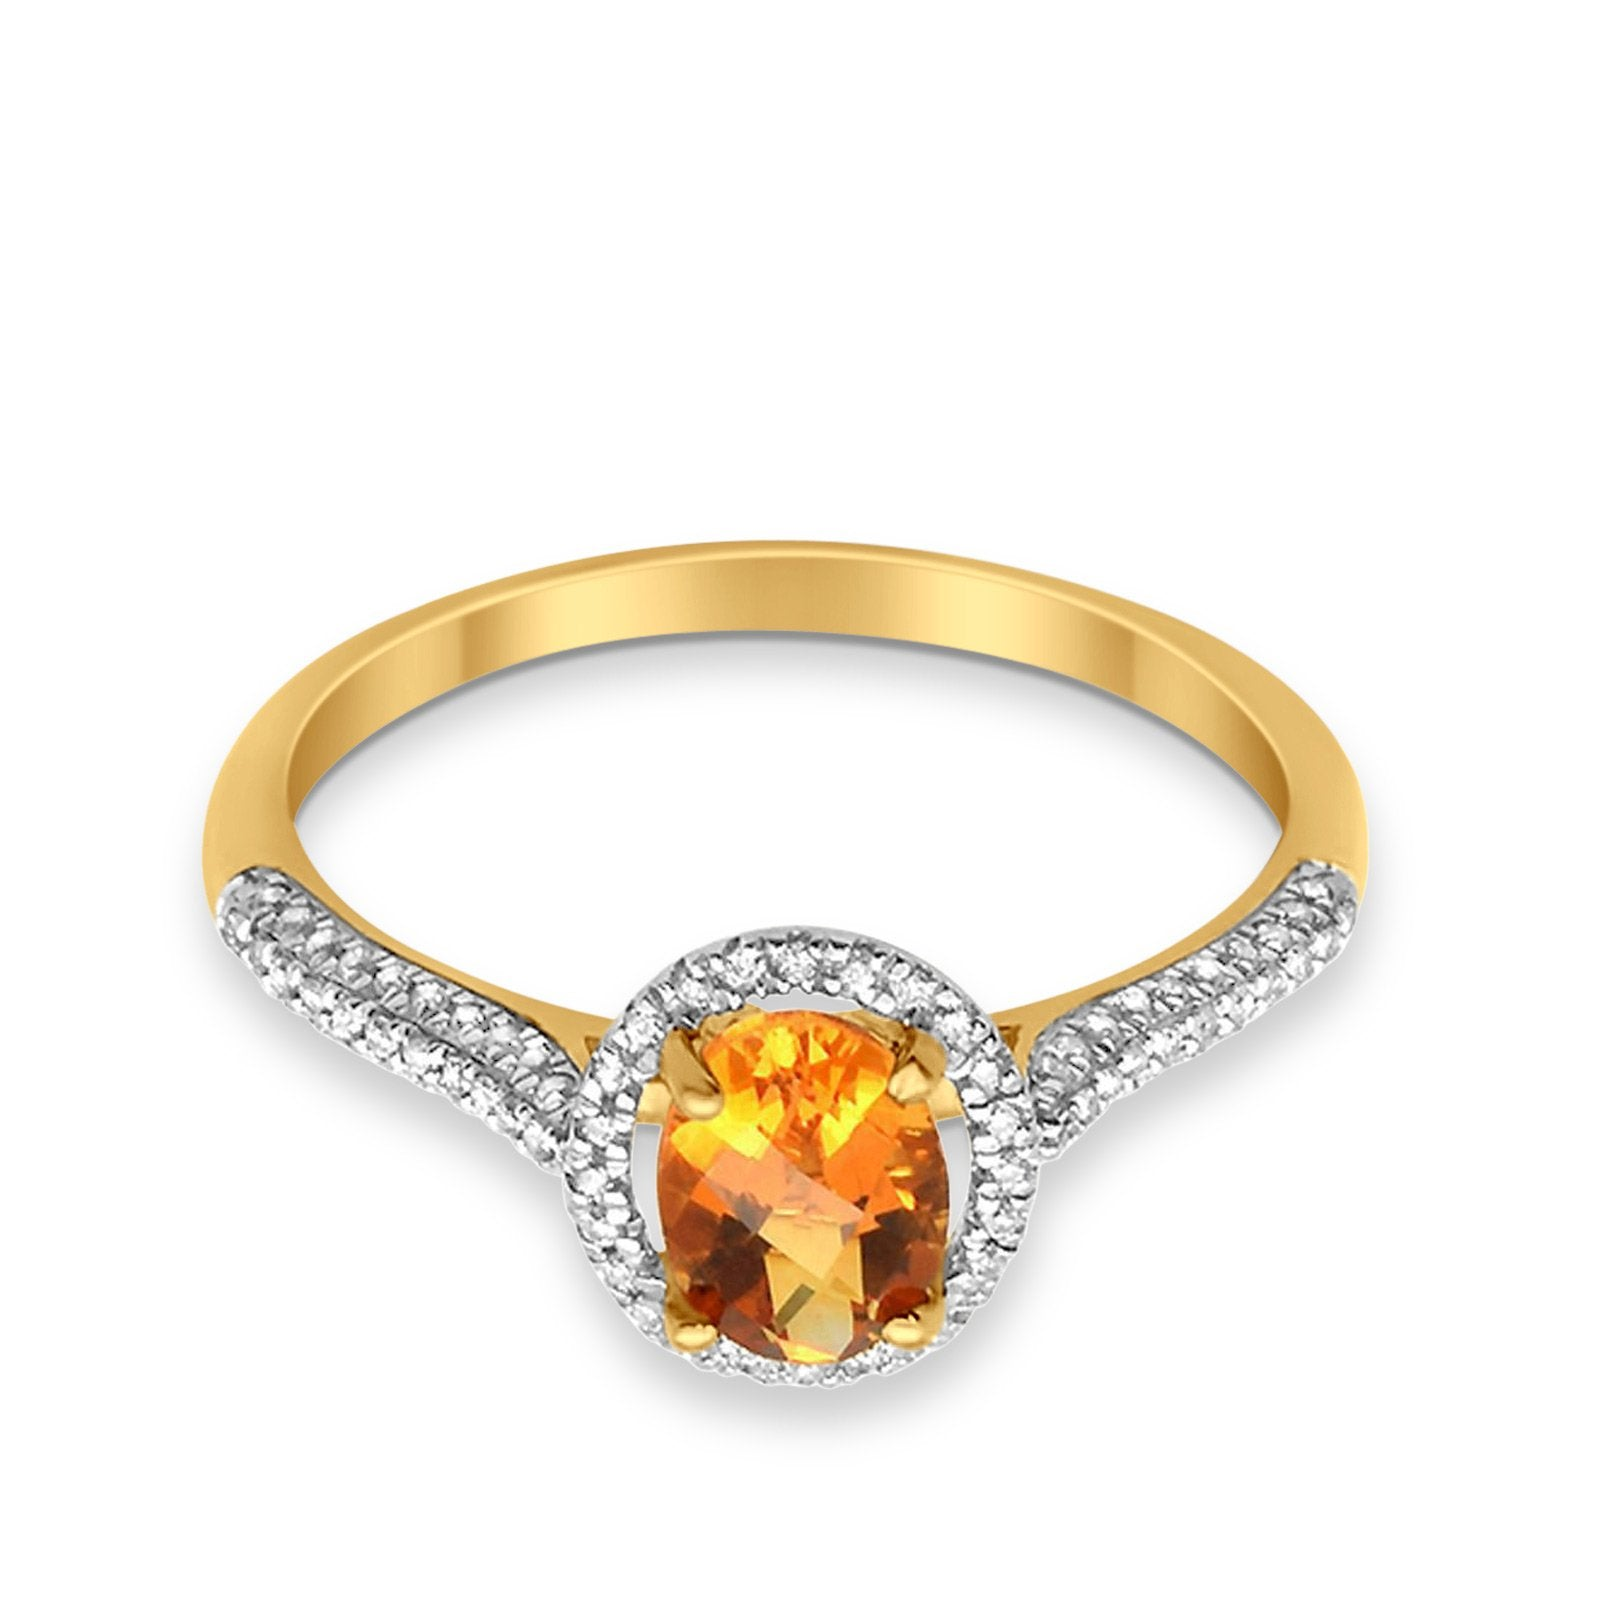 10K 0.9cts Yellow Gold Oval Citrine Gemstone & Diamond Ring Size 6.5